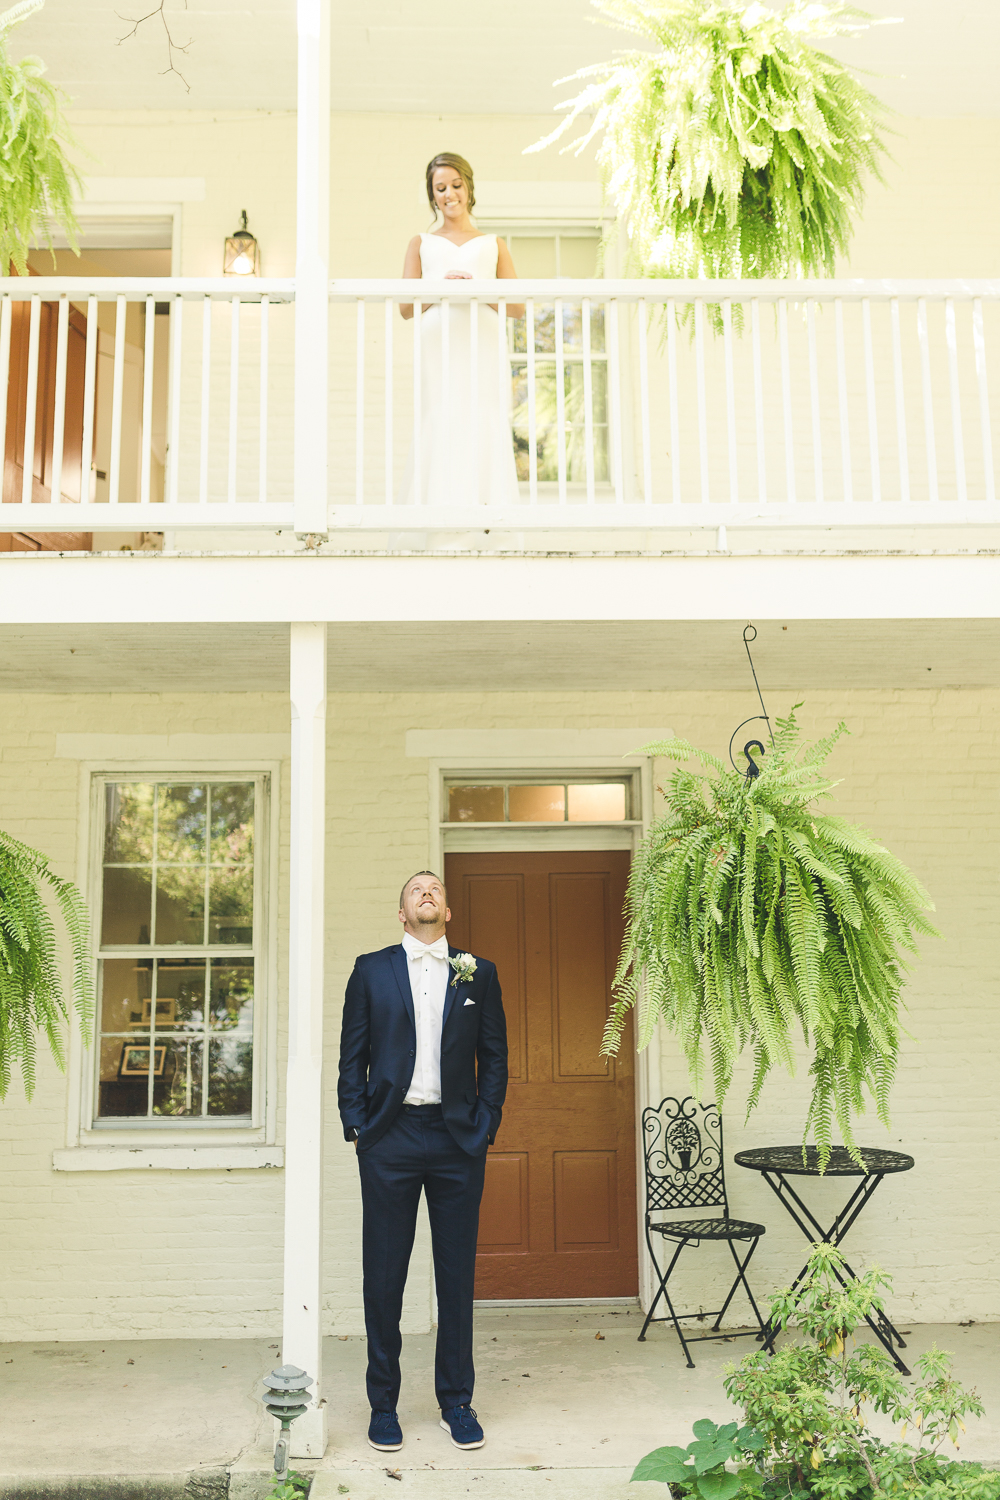 Groom looking up at bride on balcony